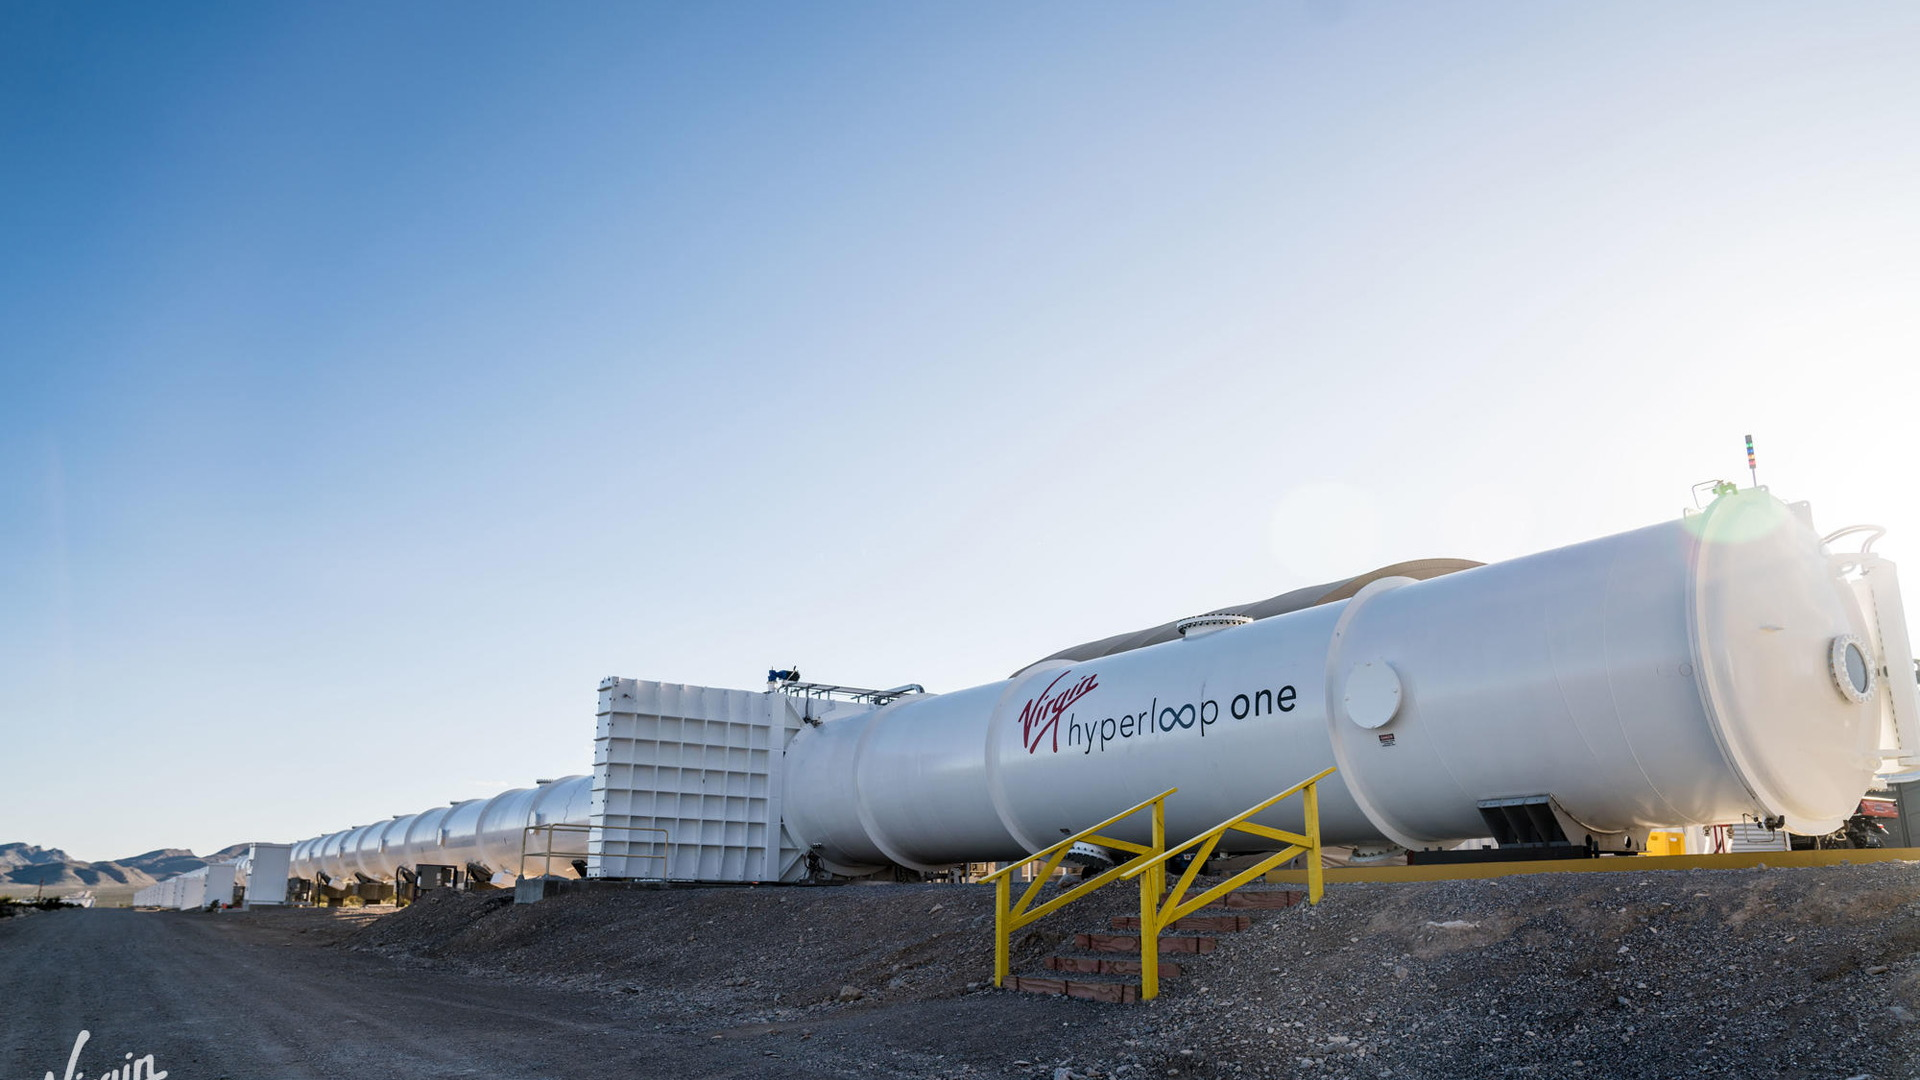 Virgin Hyperloop One test track in Nevada